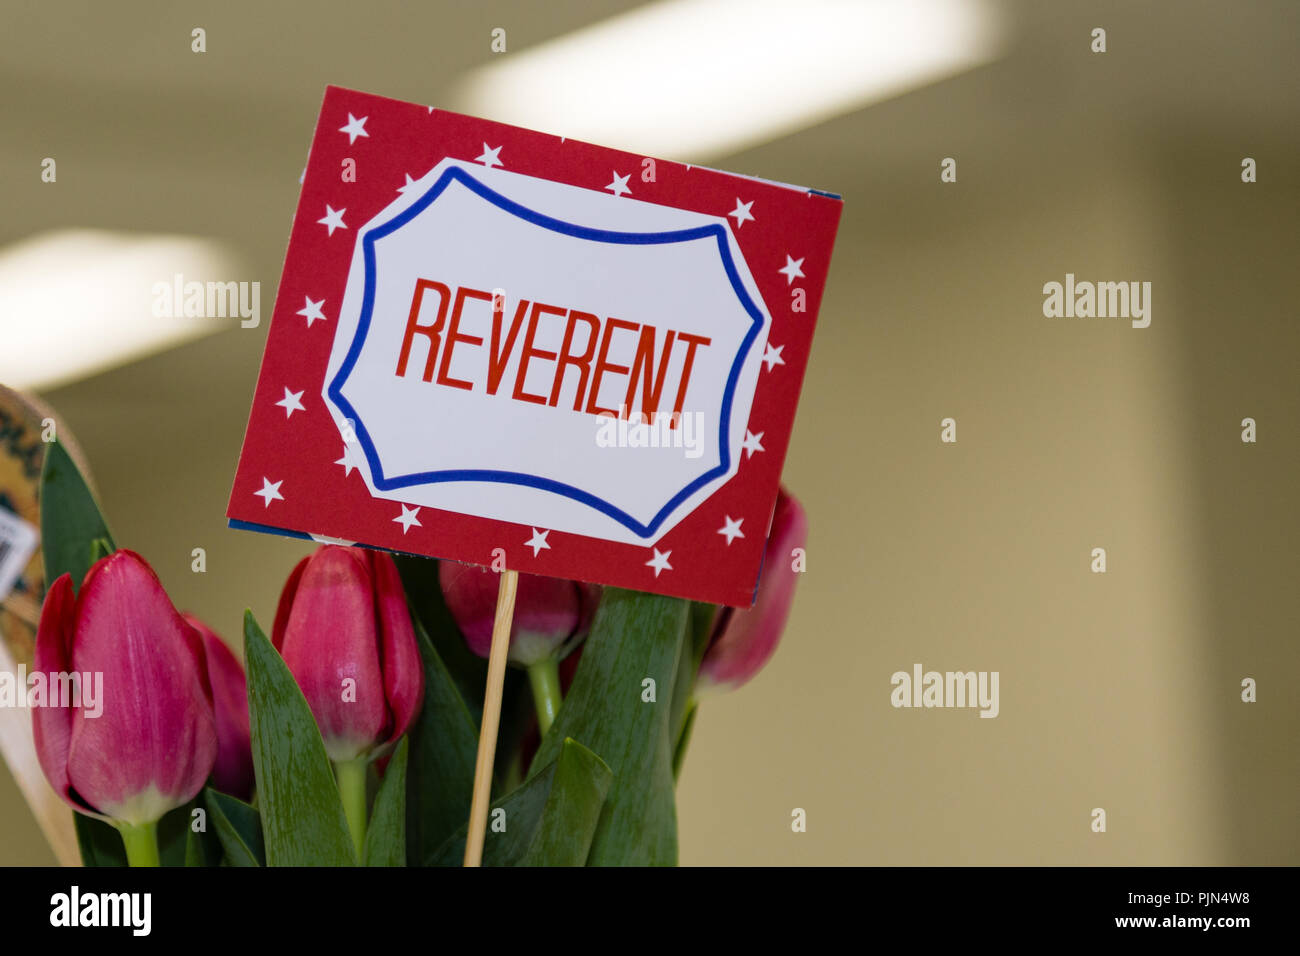 Scout is reverent small sign with flowers and space for text - Stock Image